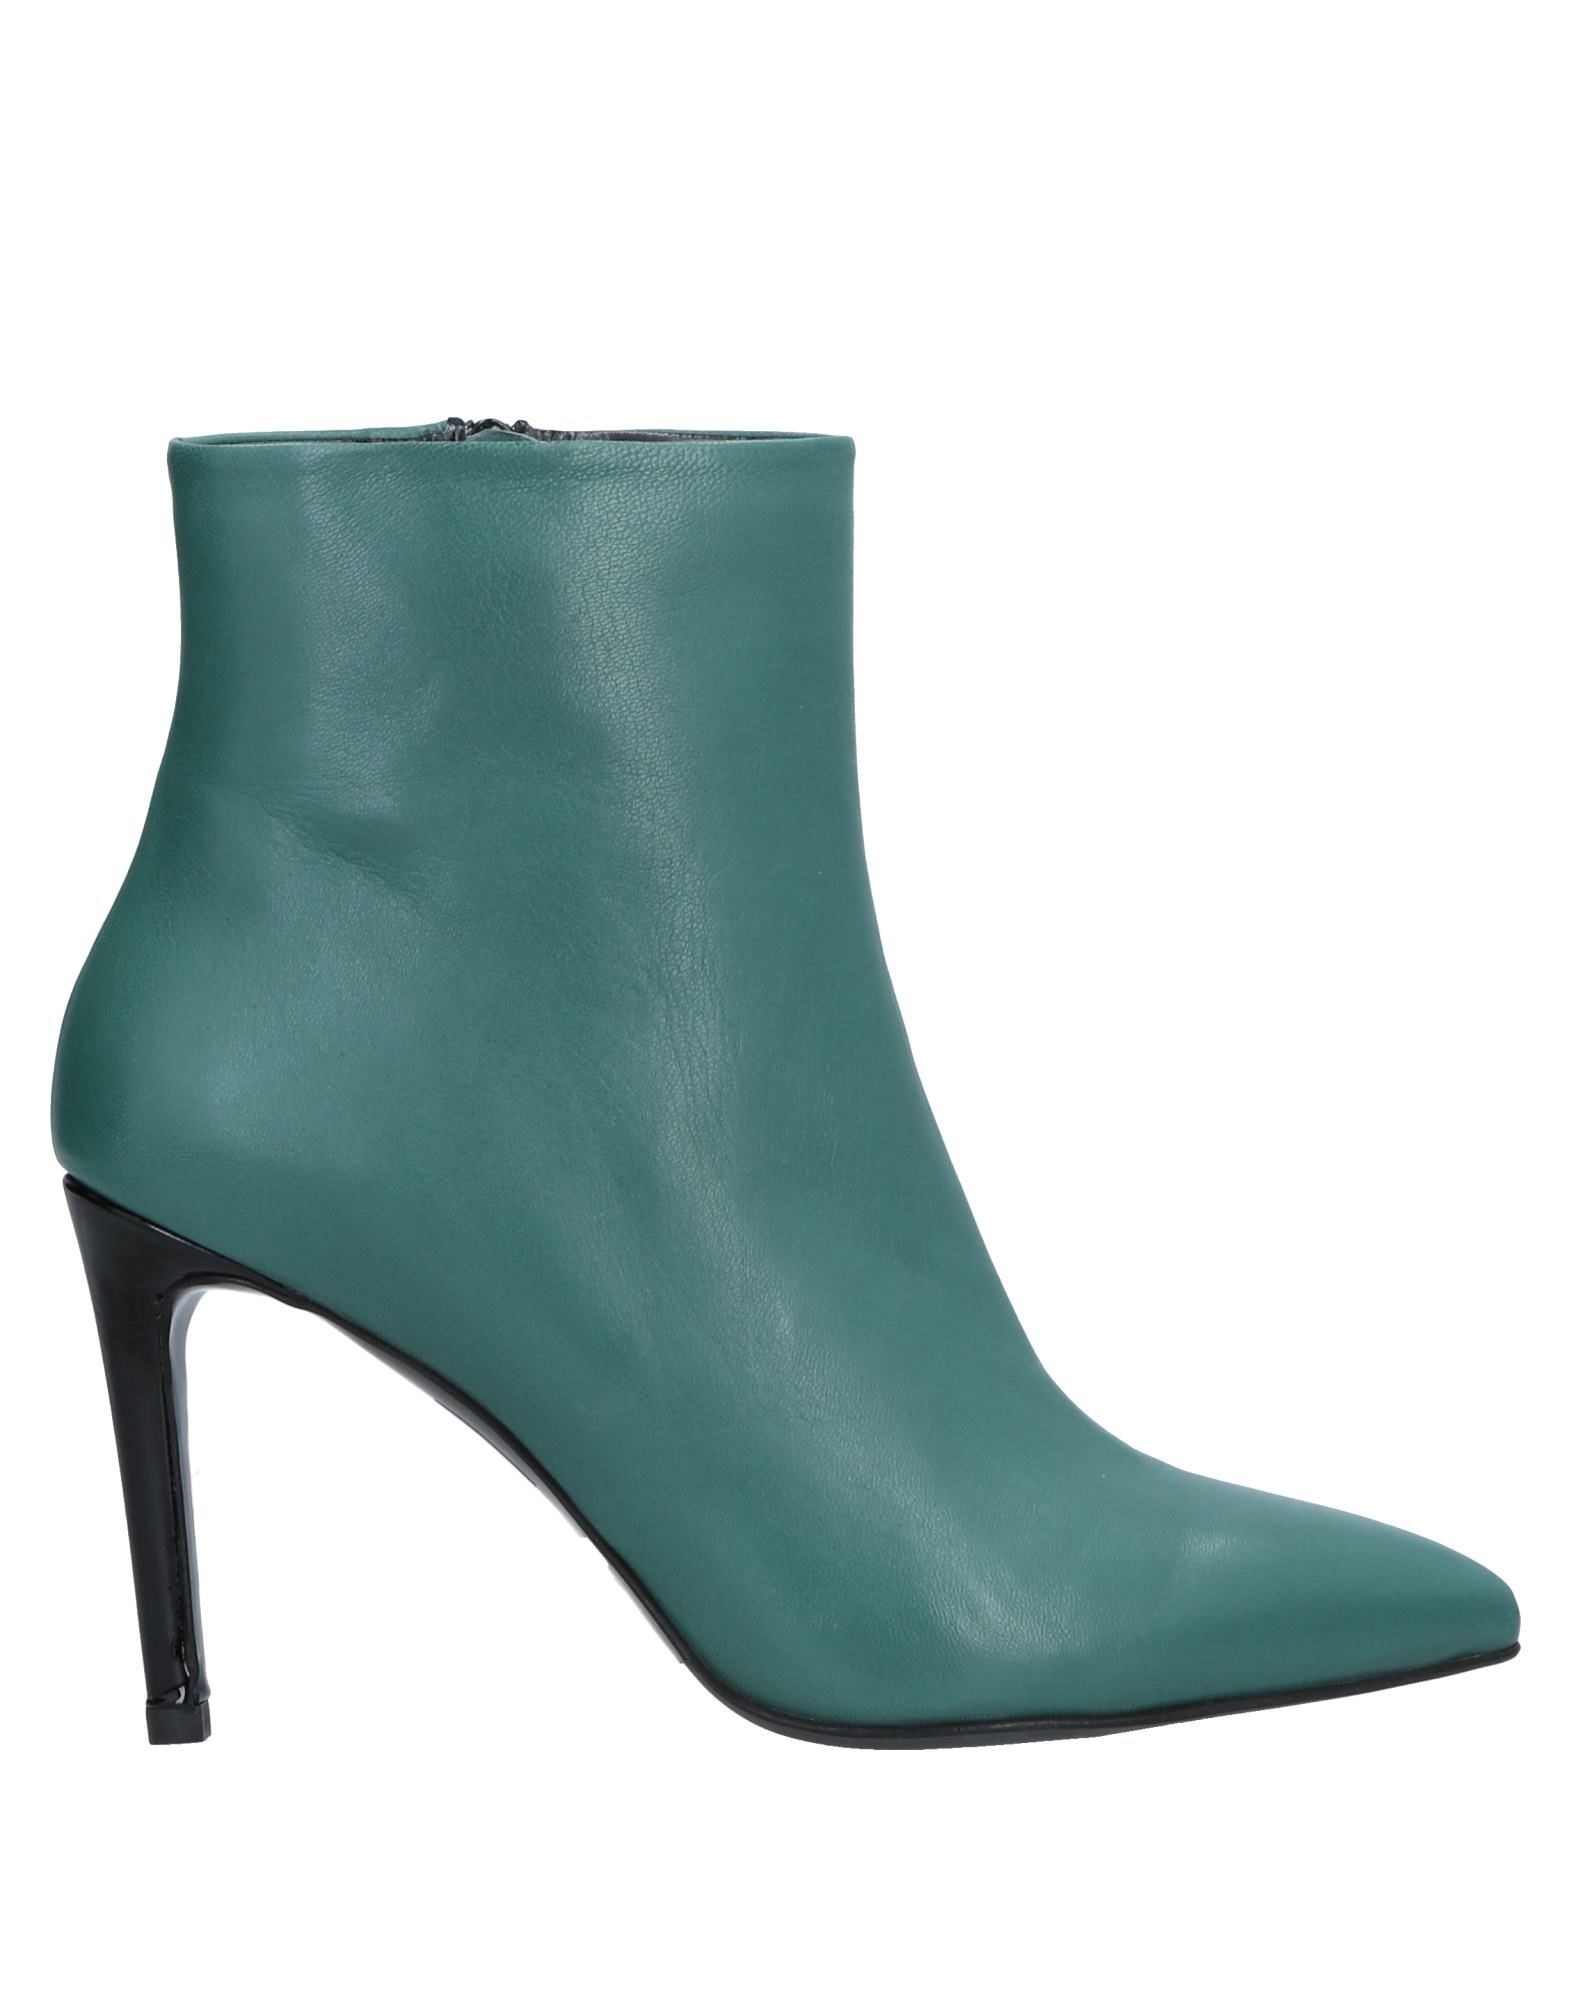 GIANNI MARRA Ankle Boot in Green